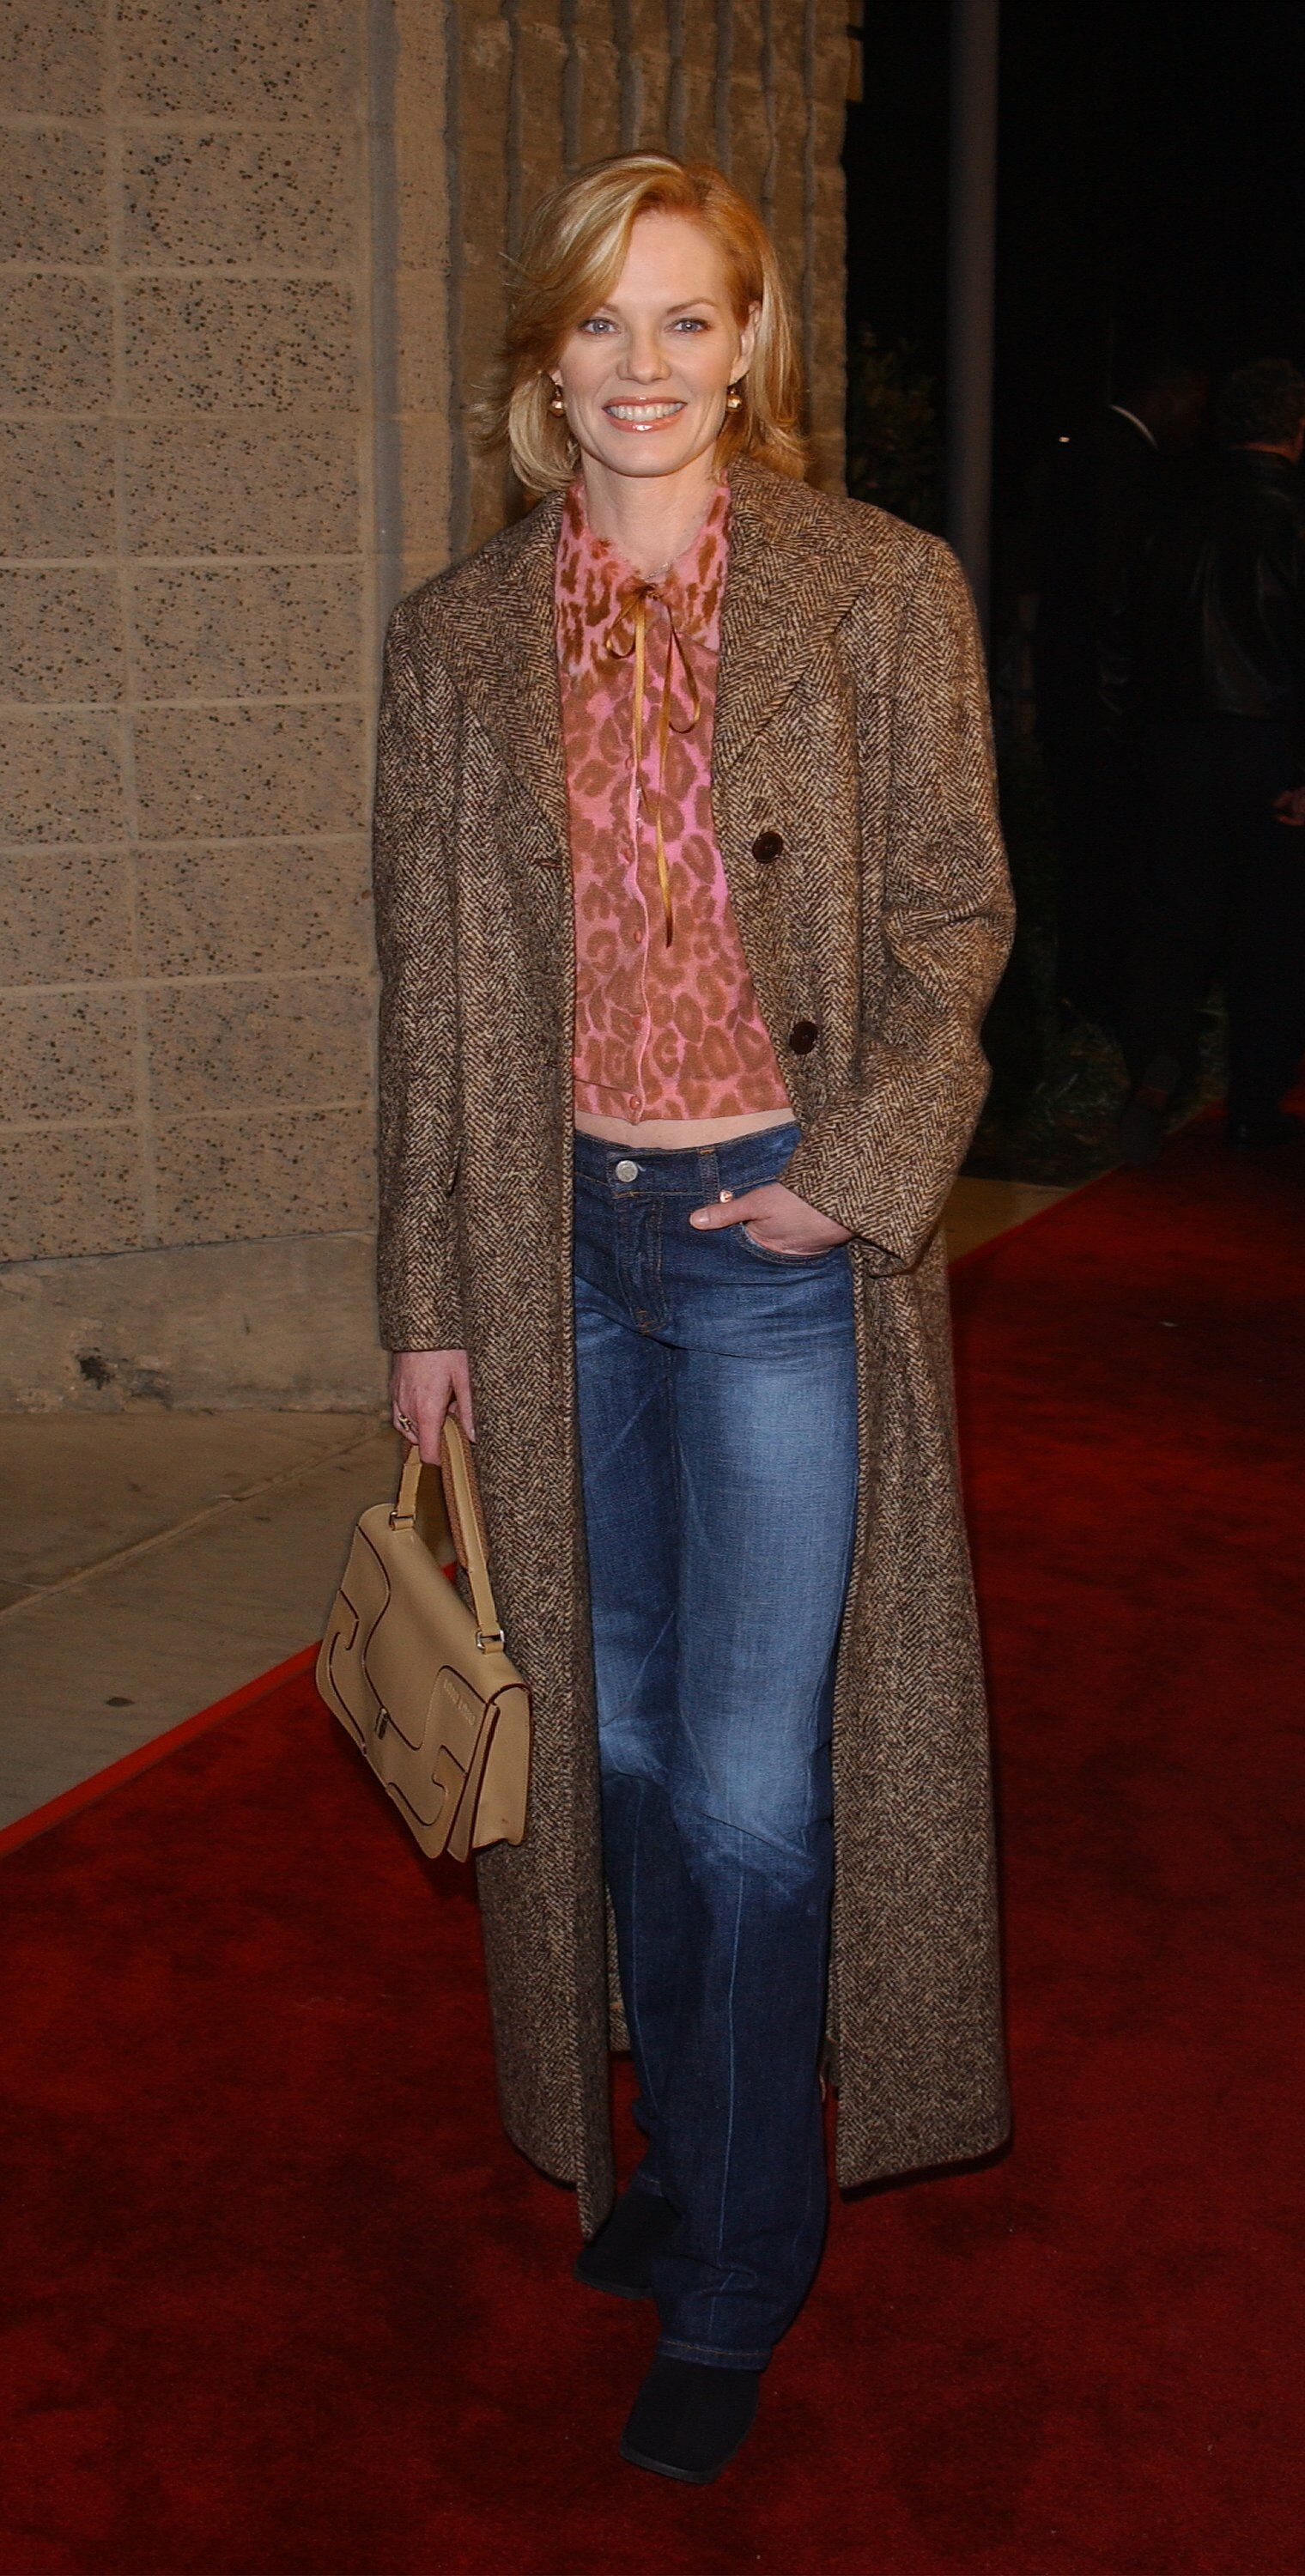 """Marg Helgenberger at the premiere of the film """"Black Hawk Down"""" 